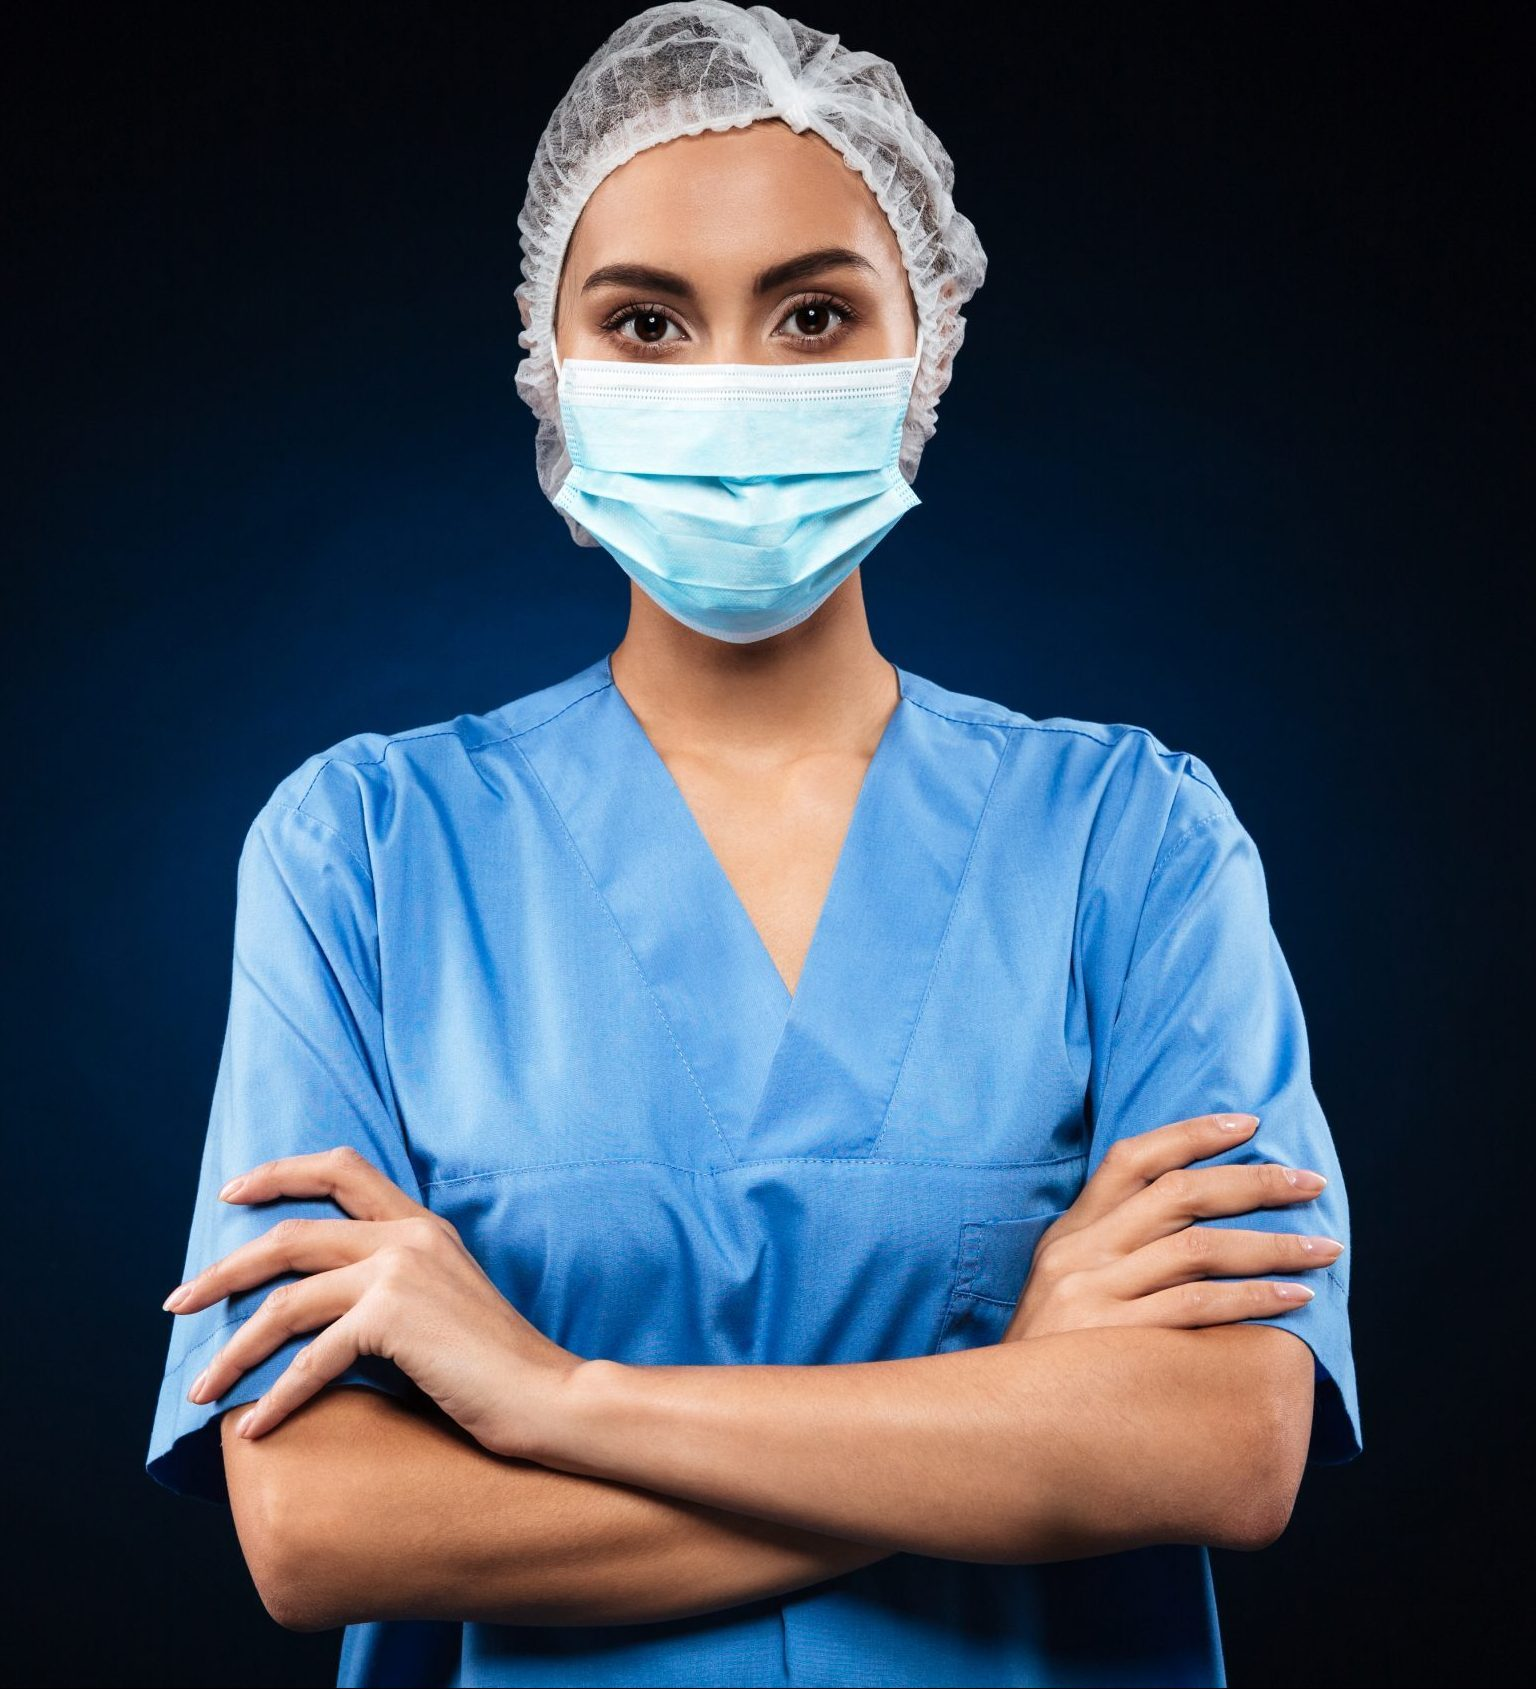 Serious doctor in medical mask and cap looking camera and holding hands folded isolated over black